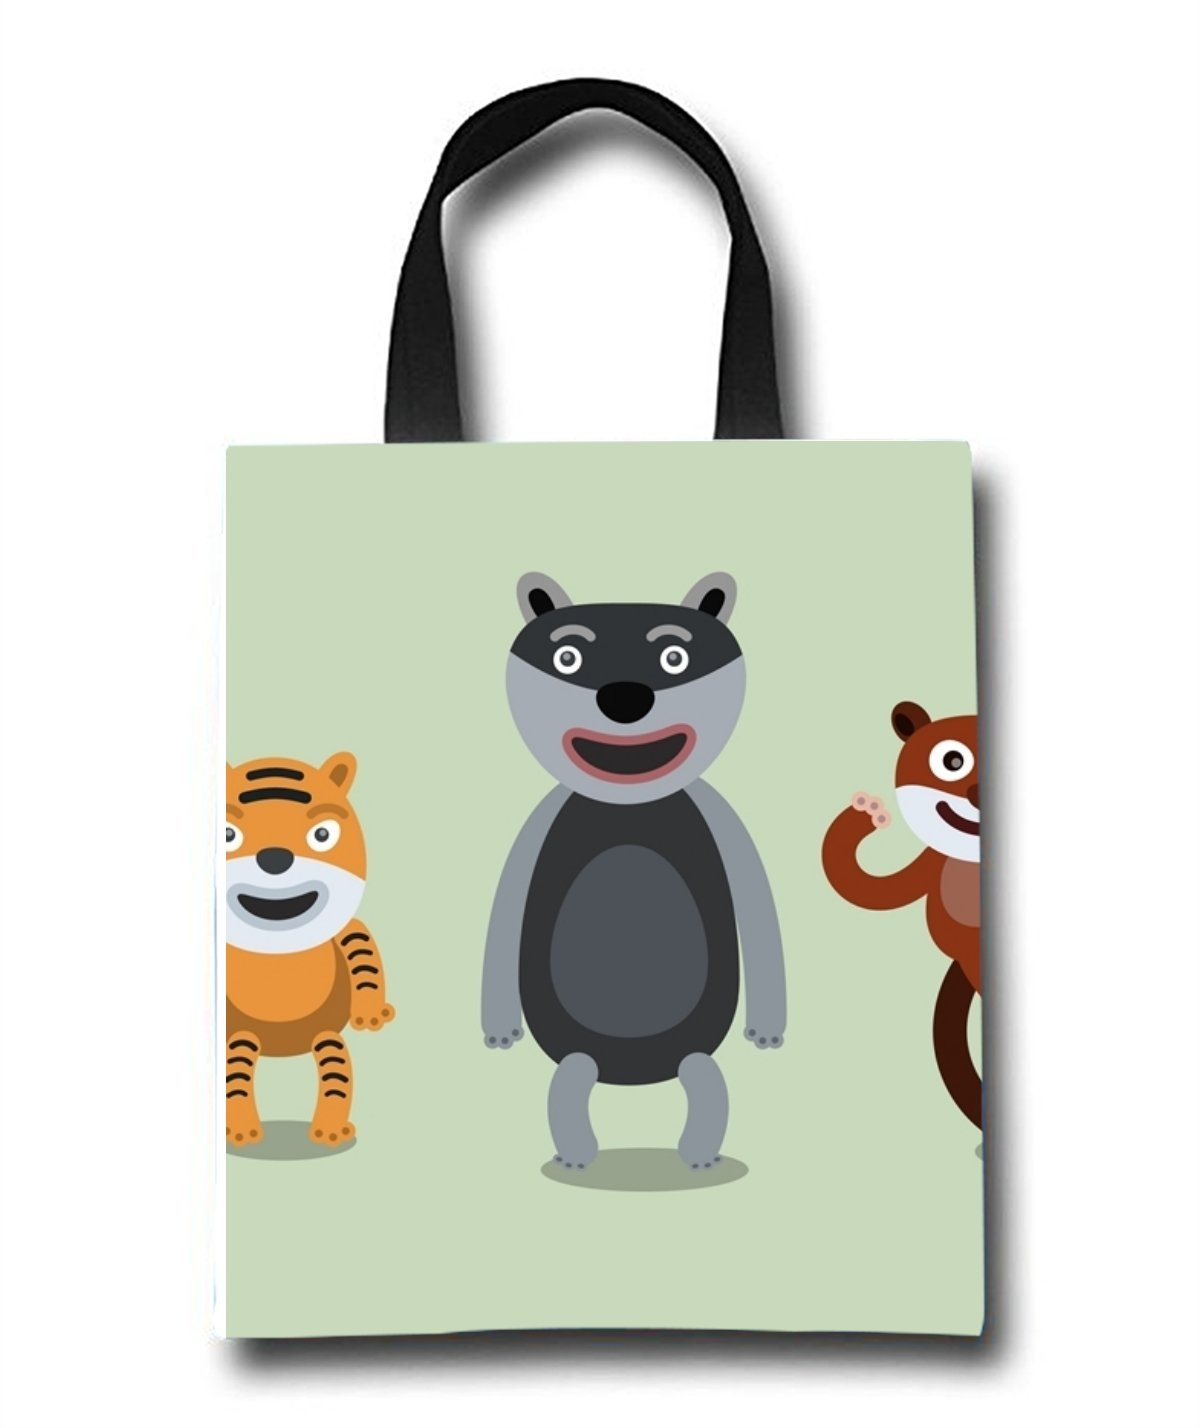 Cartoon Africa Beach Tote Bag - Toy Tote Bag - Large Lightweight Market, Grocery & Picnic